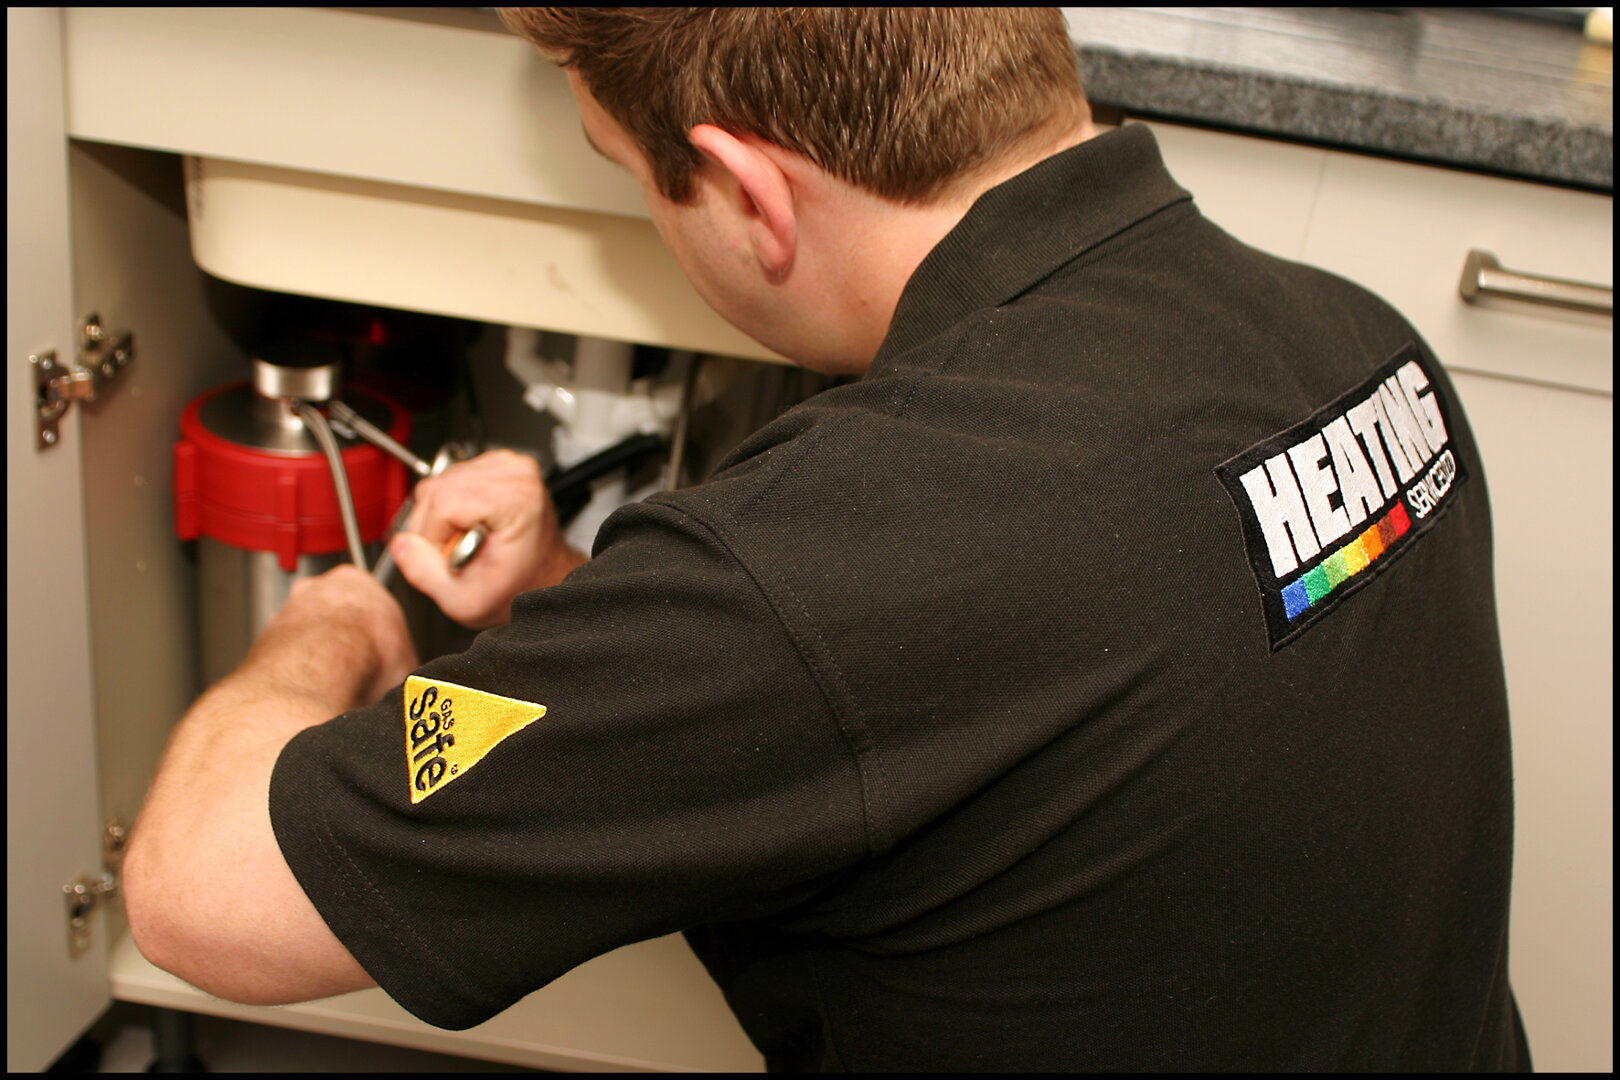 Plumbers Boiler Installation Service and Repairs and Bathroom Design and Installation by Heating Services Ltd in Redhill (3)